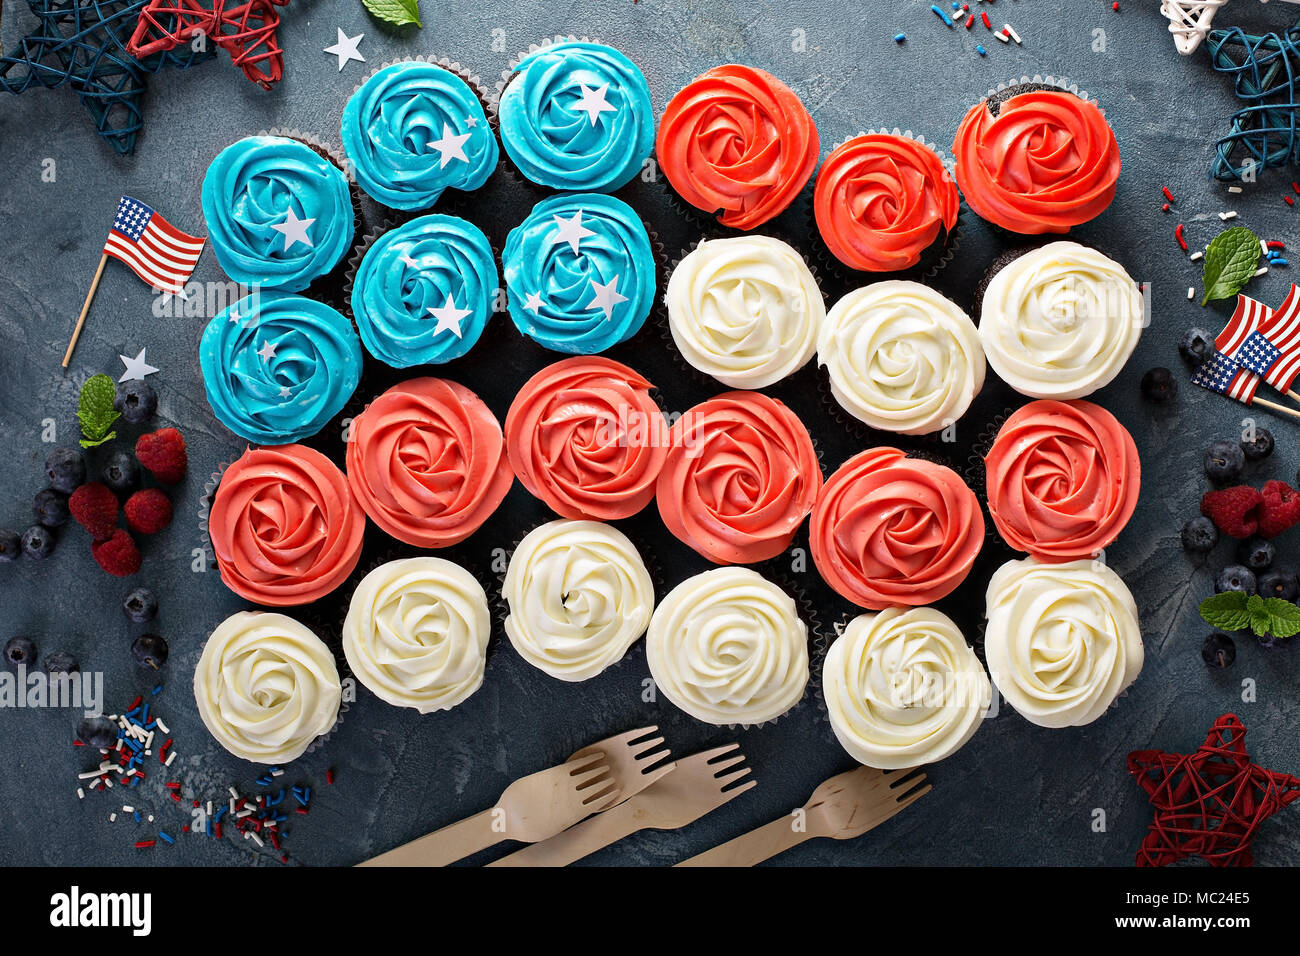 American flag cupcakes for 4th of July - Stock Image